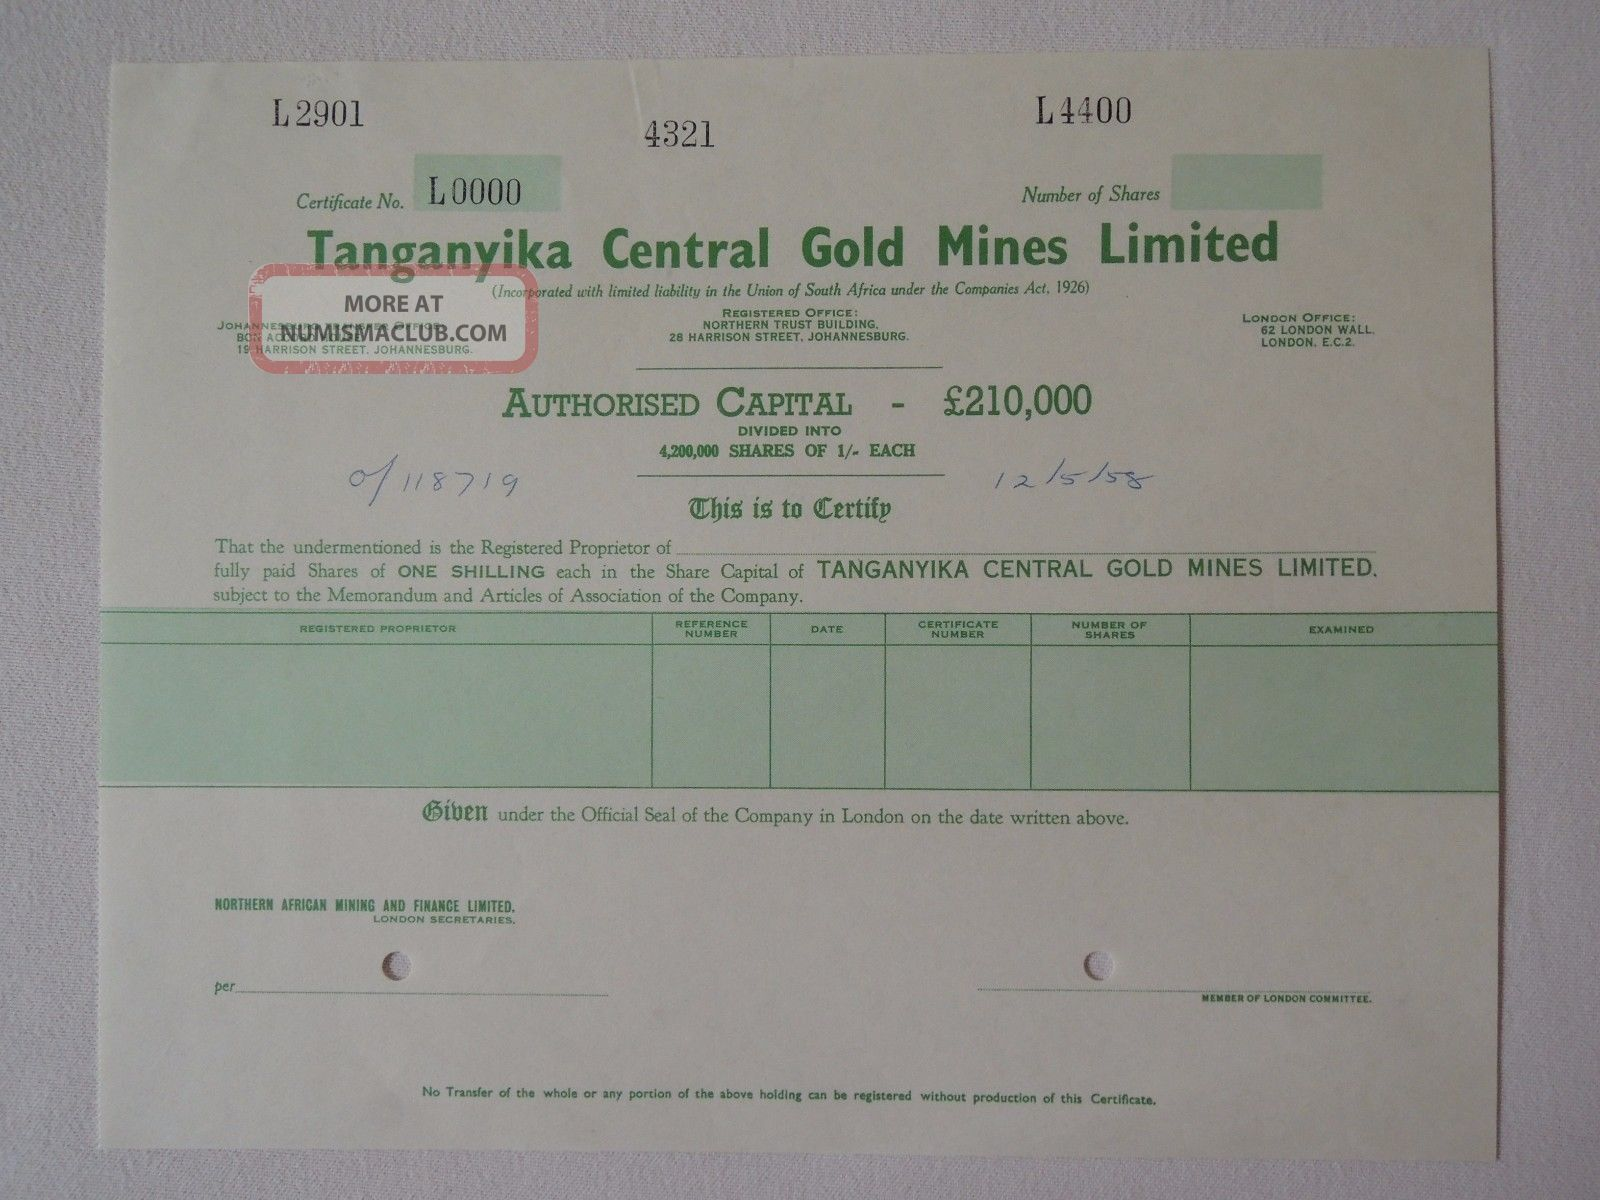 Africa Tanganyika Gb Central Gold Mines Specimen Share 1958 Mining Johannesburg World photo